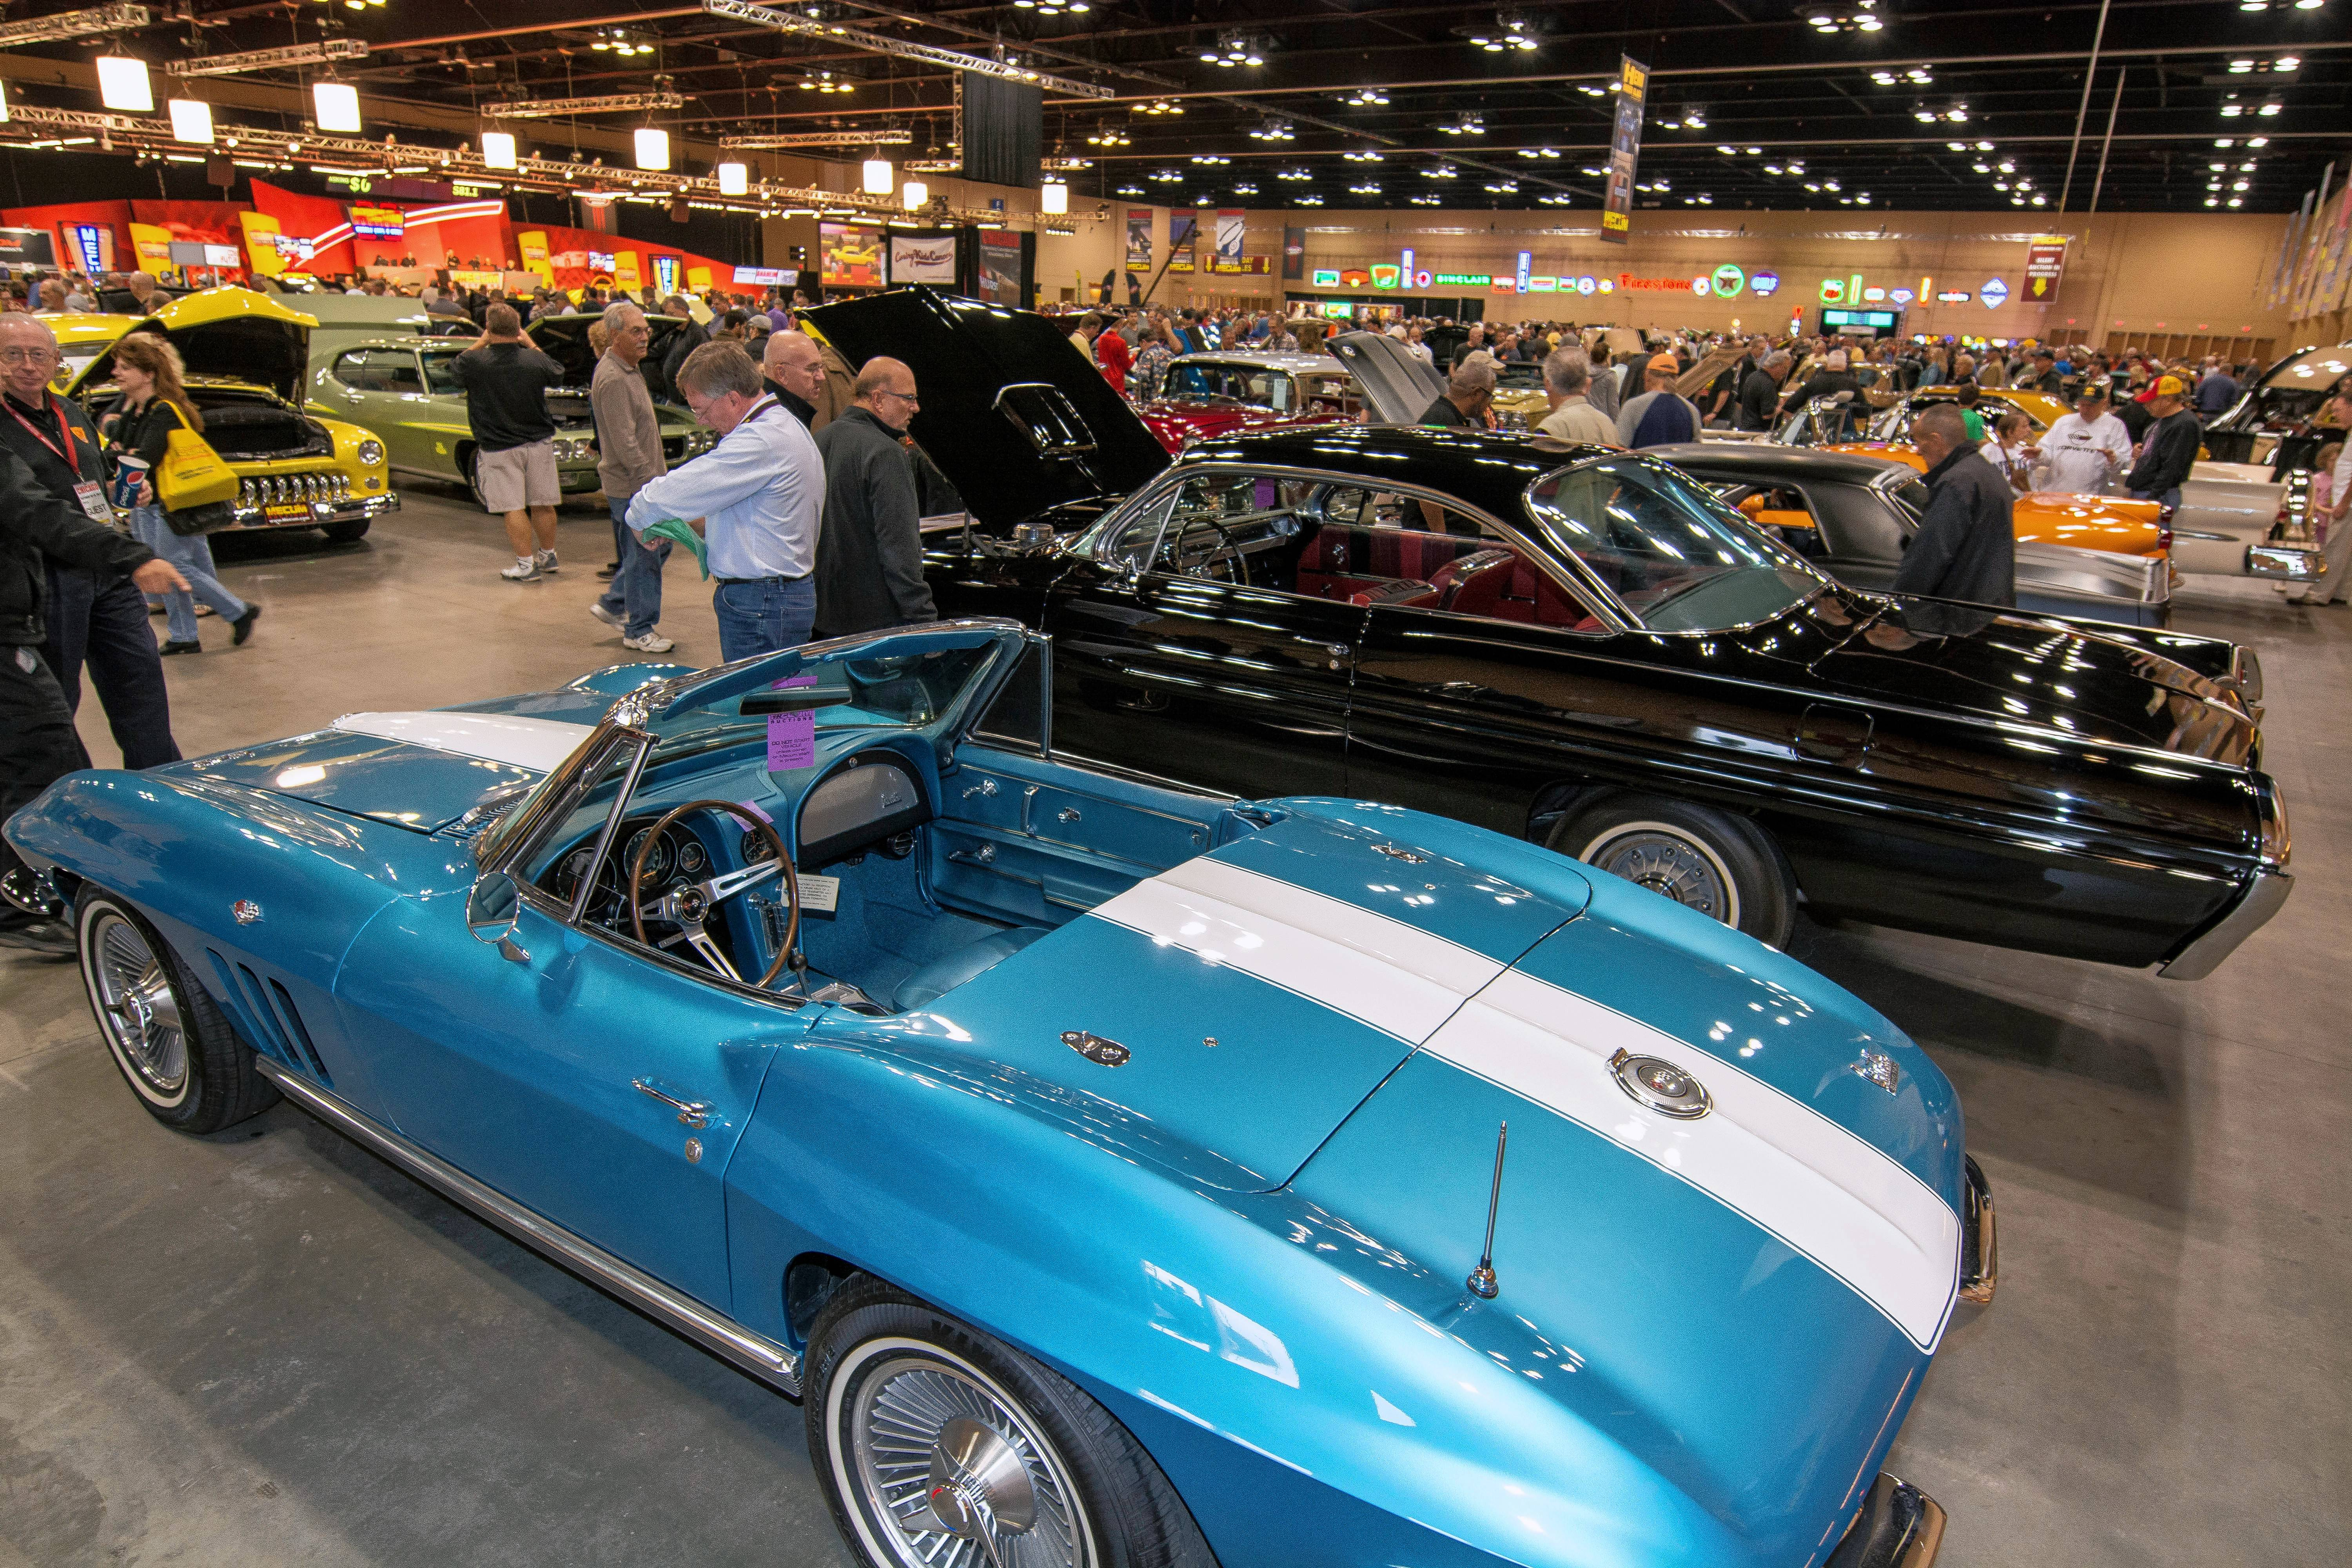 Mecum Auctions will be selling more than 1,000 cars at its Chicago Auction in Schaumburg Oct. 5-7.